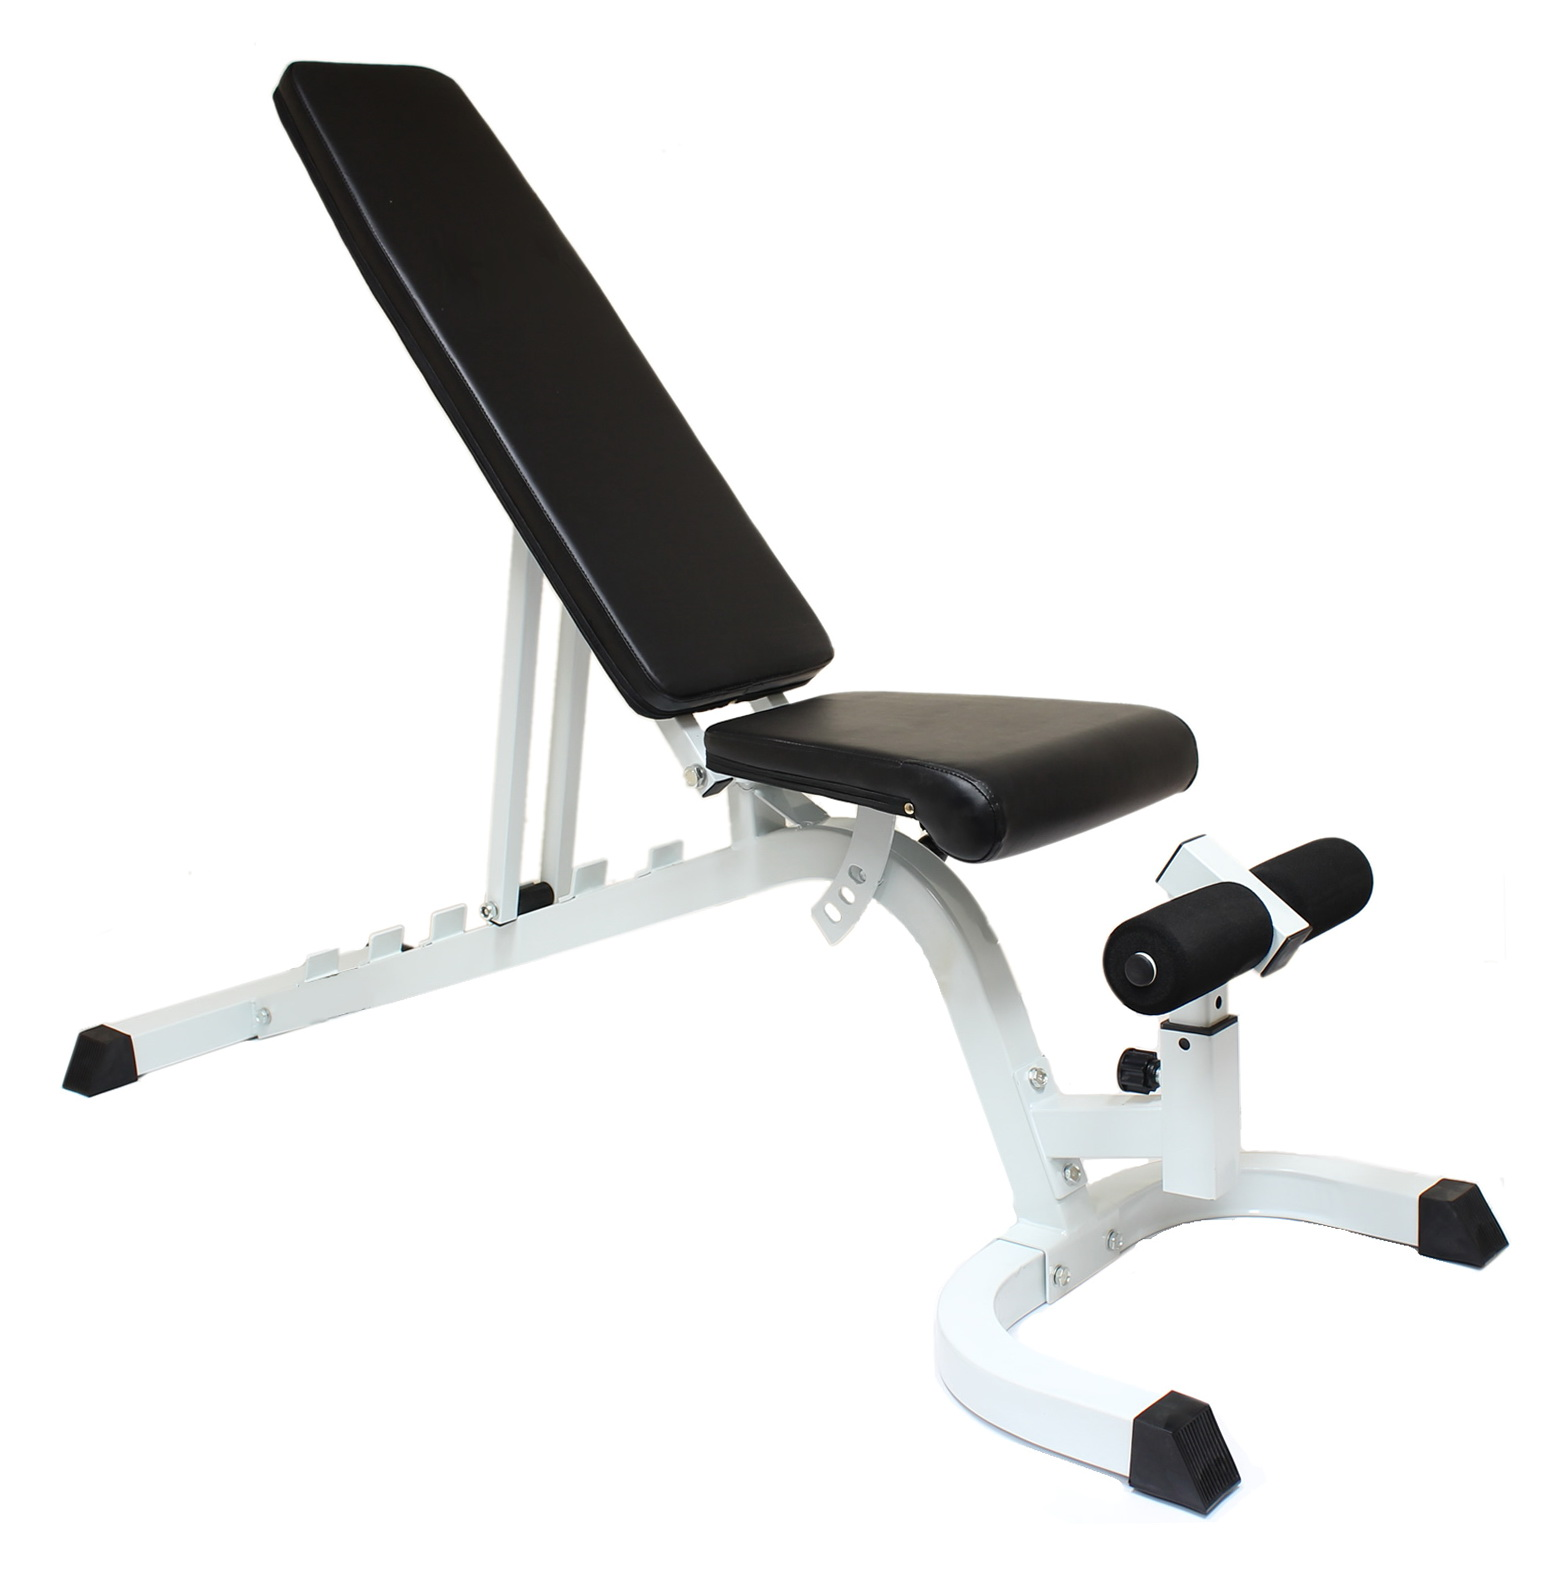 Weight Benches For Sale On Ebay Home Design Ideas